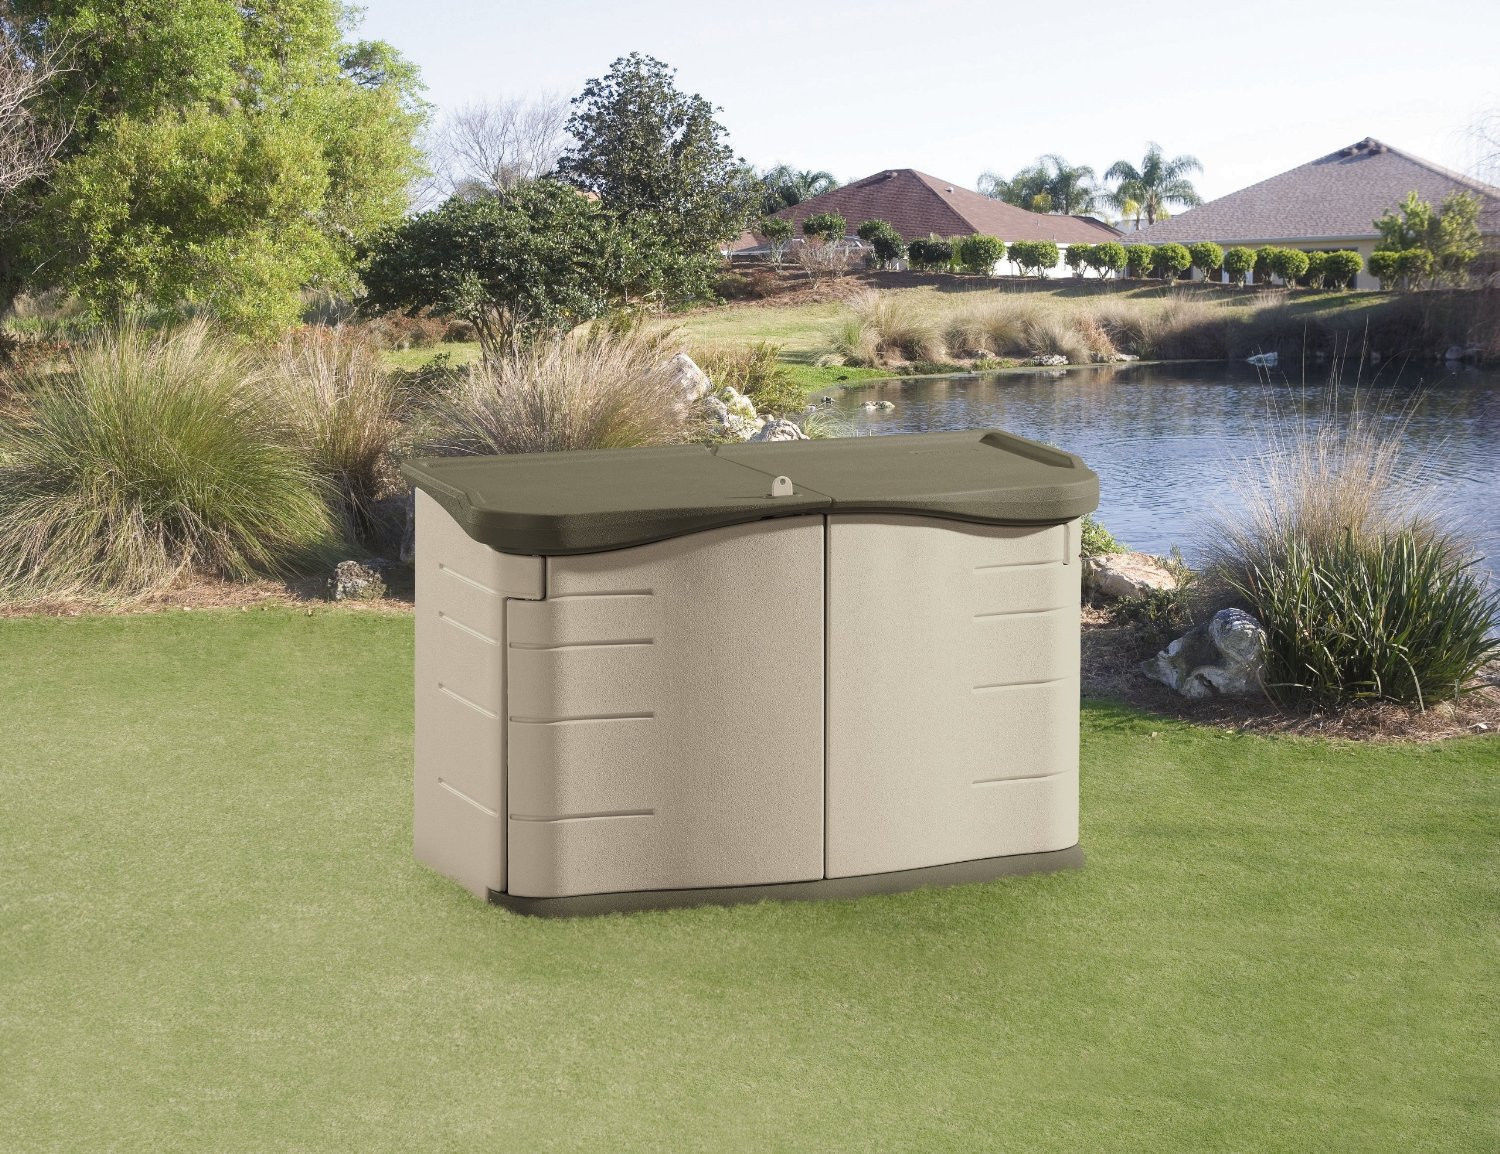 Outdoor storage shed bin box garden yard deck patio for Outdoor garden shed